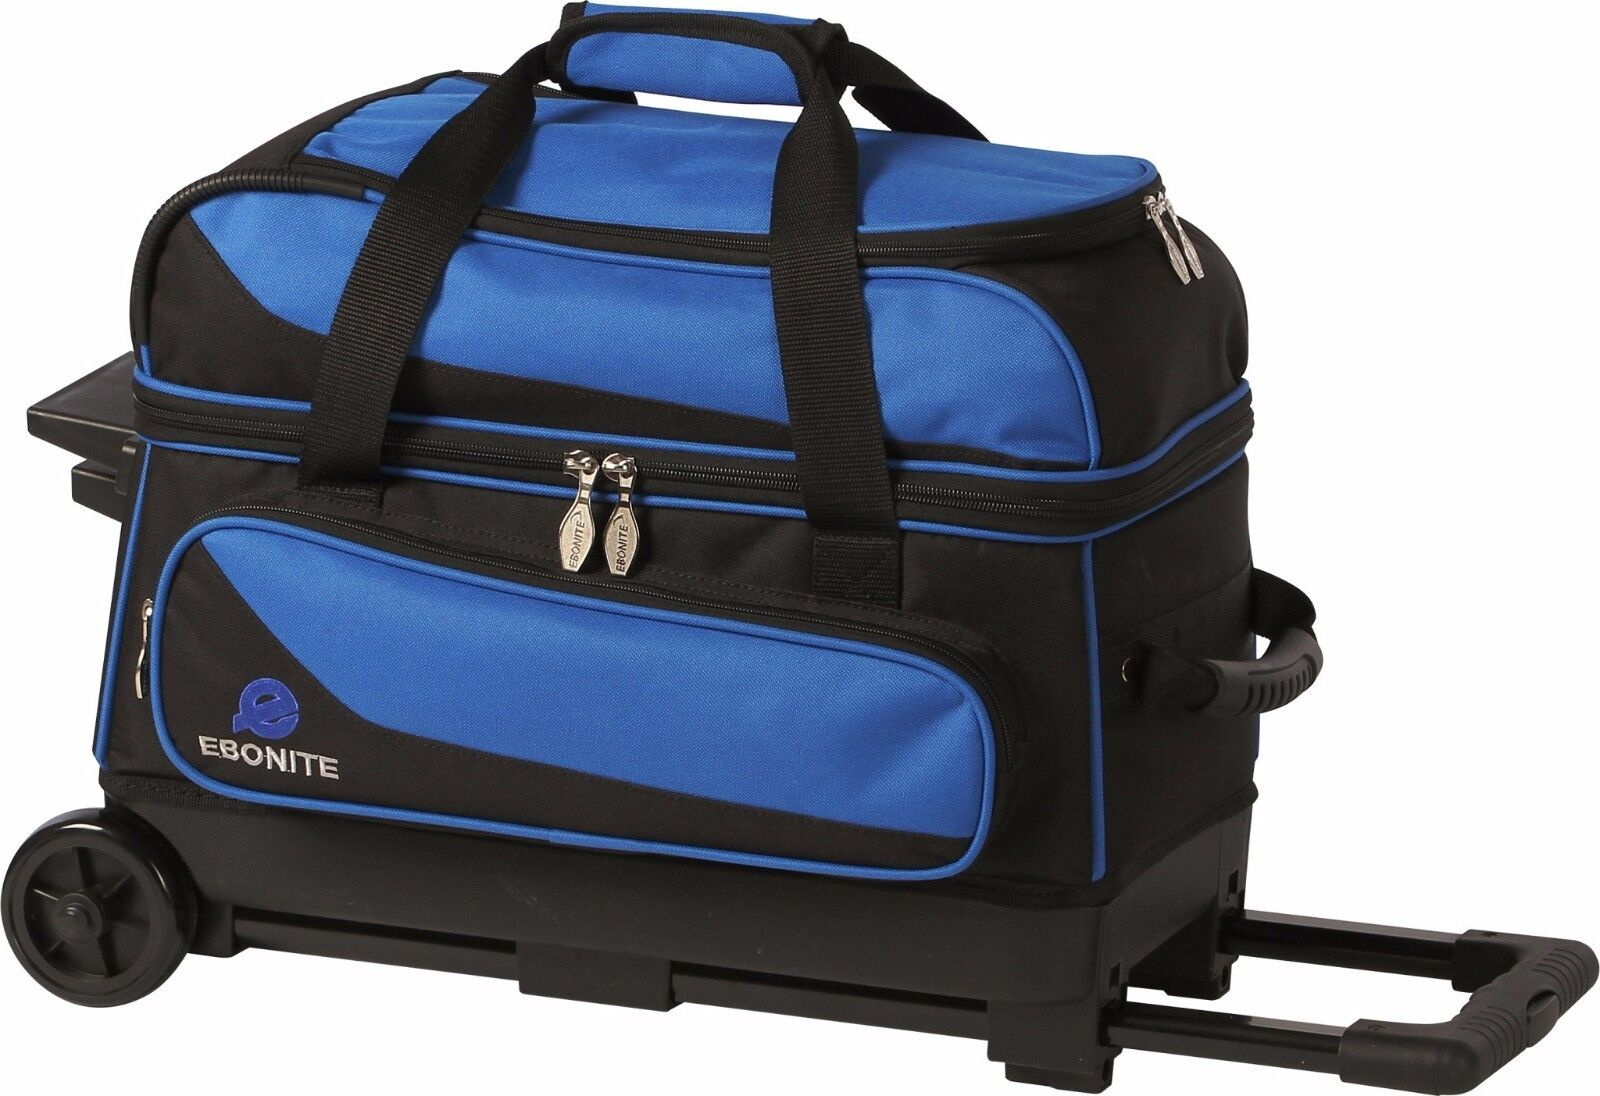 Ebonite Transport 2 Ball Roller Bowling Bag with Wheels bluee 5 Year Warranty